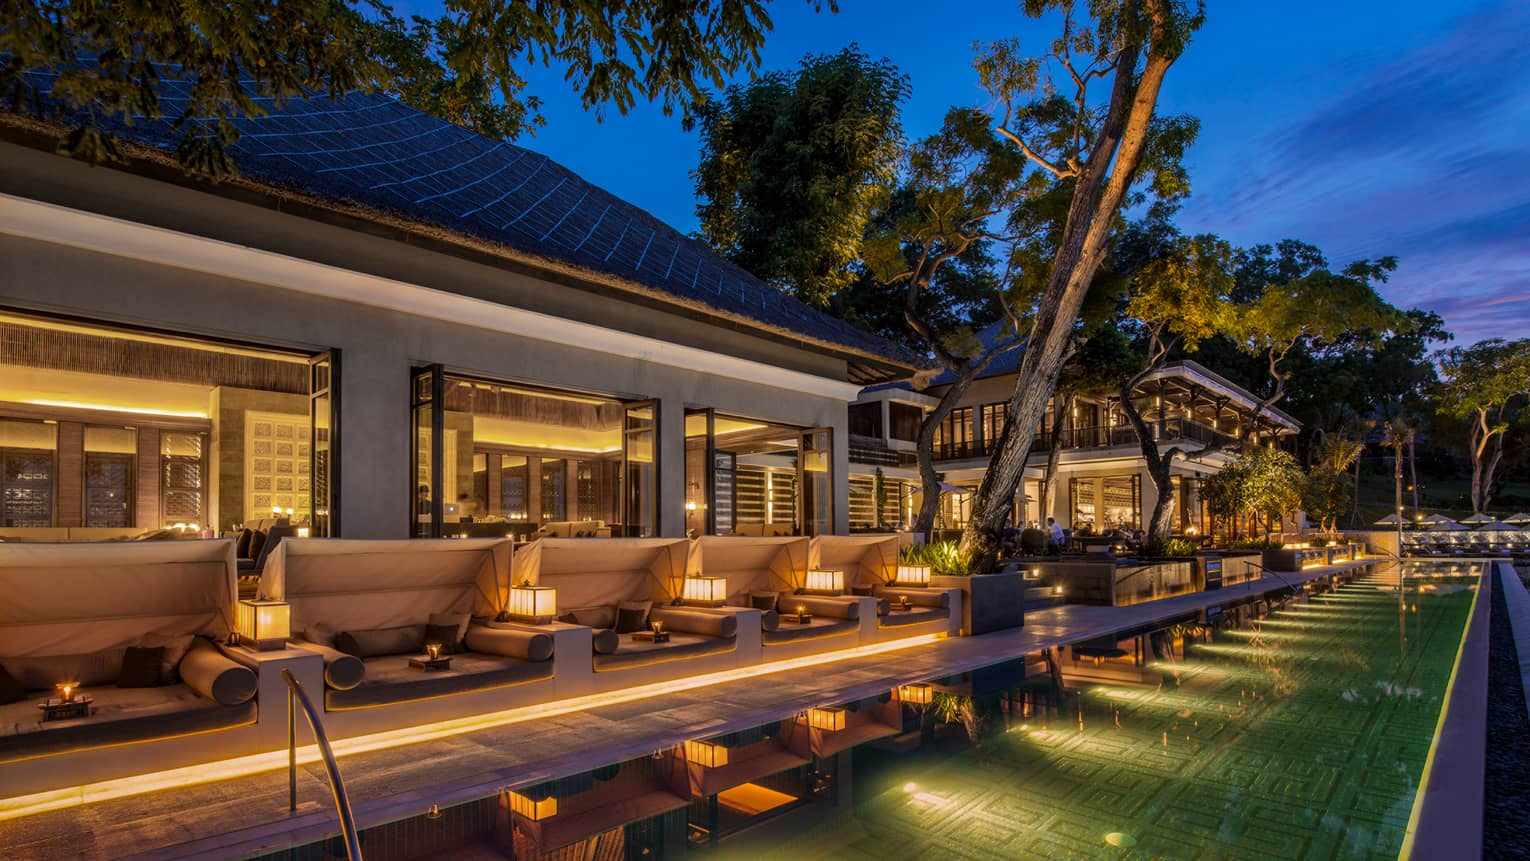 Sundara illuminated swimming pool at night lined with white patio sofas, candles